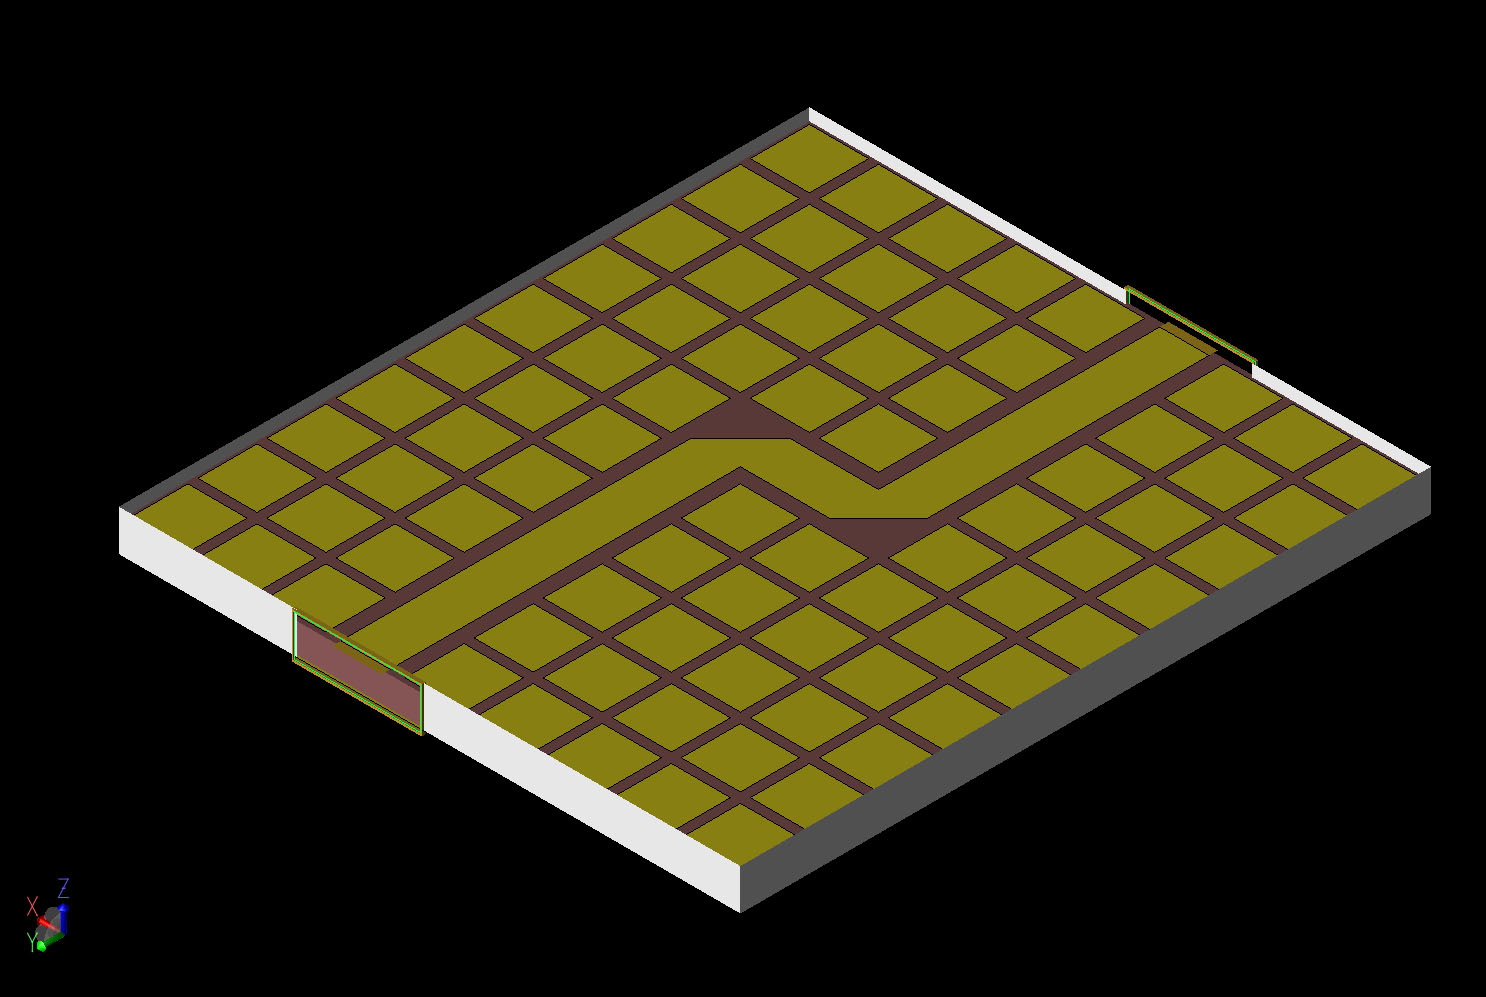 Figure 2  A CAD view of the geometry shown at an angle with the top of the box removed.